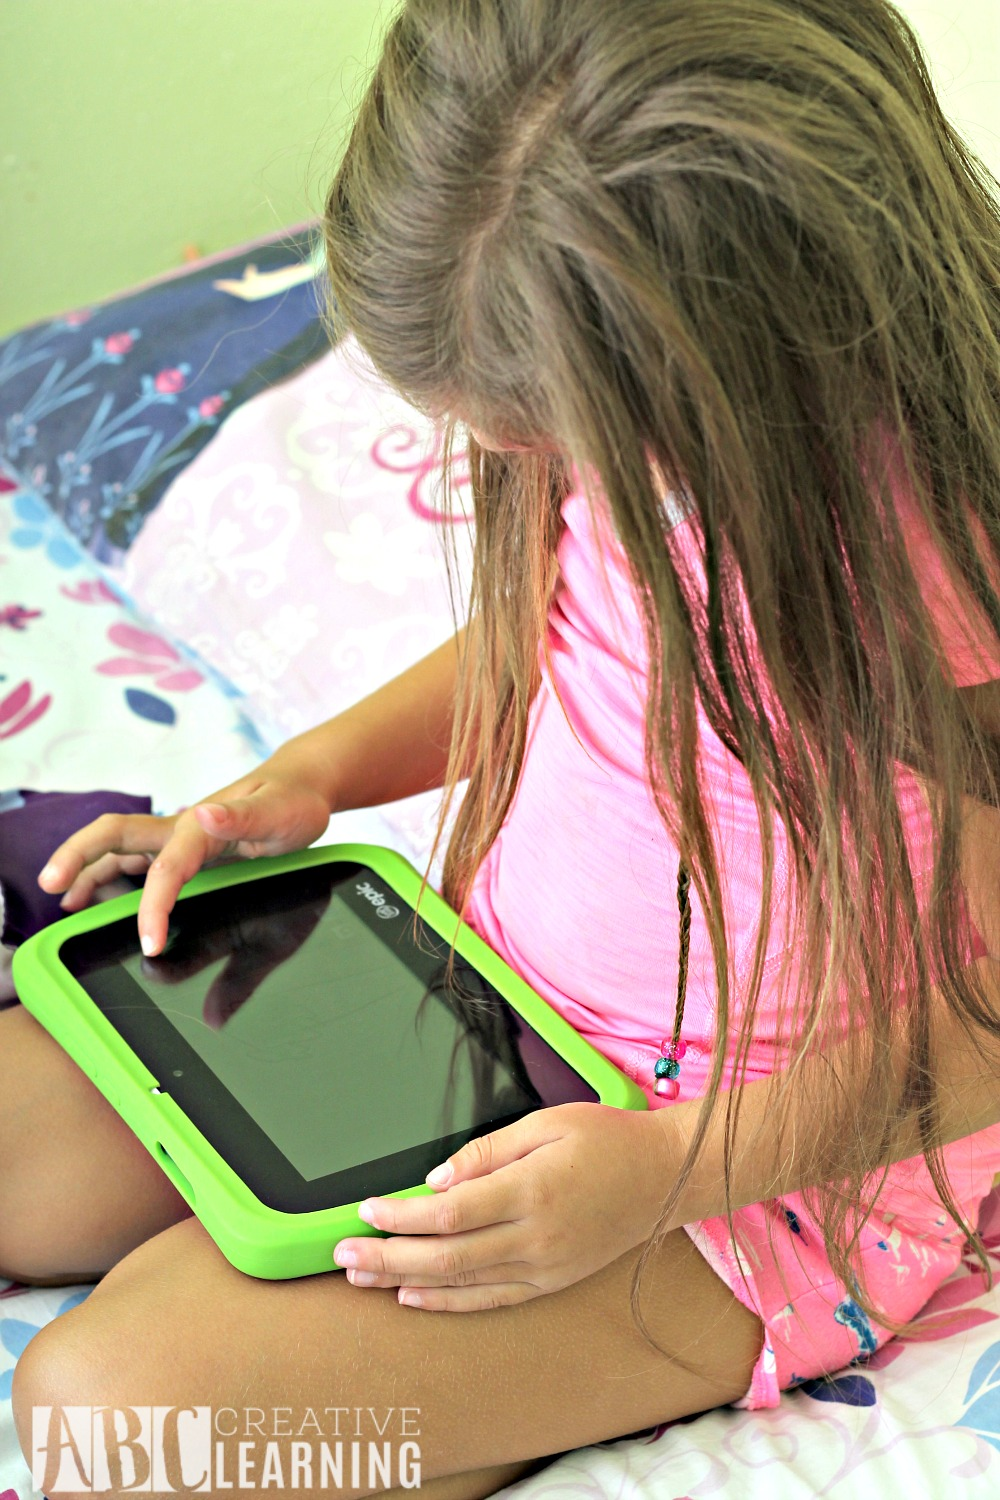 Creativity and Imagination with the LeapFrog Epic Tablet K